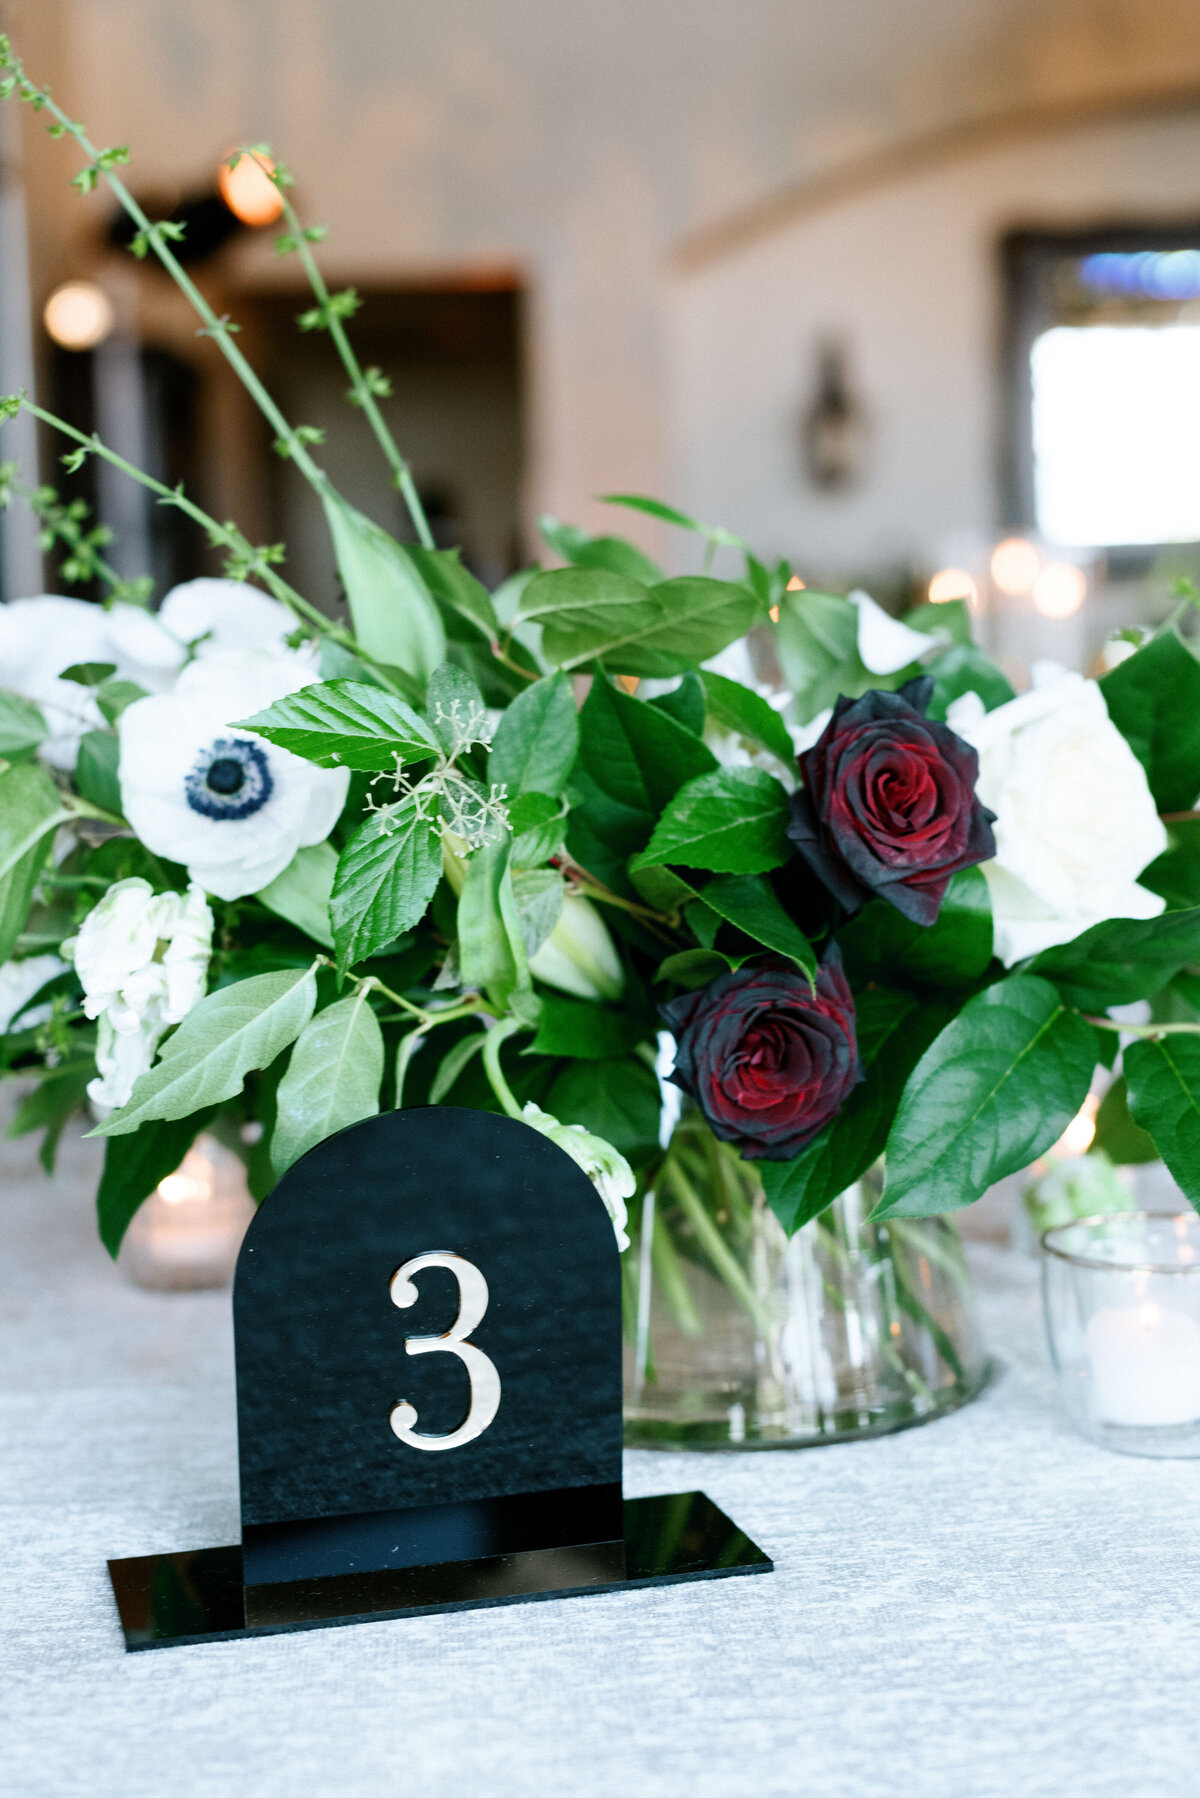 041319_CaitlinandJonathan_ReceptionDetails41